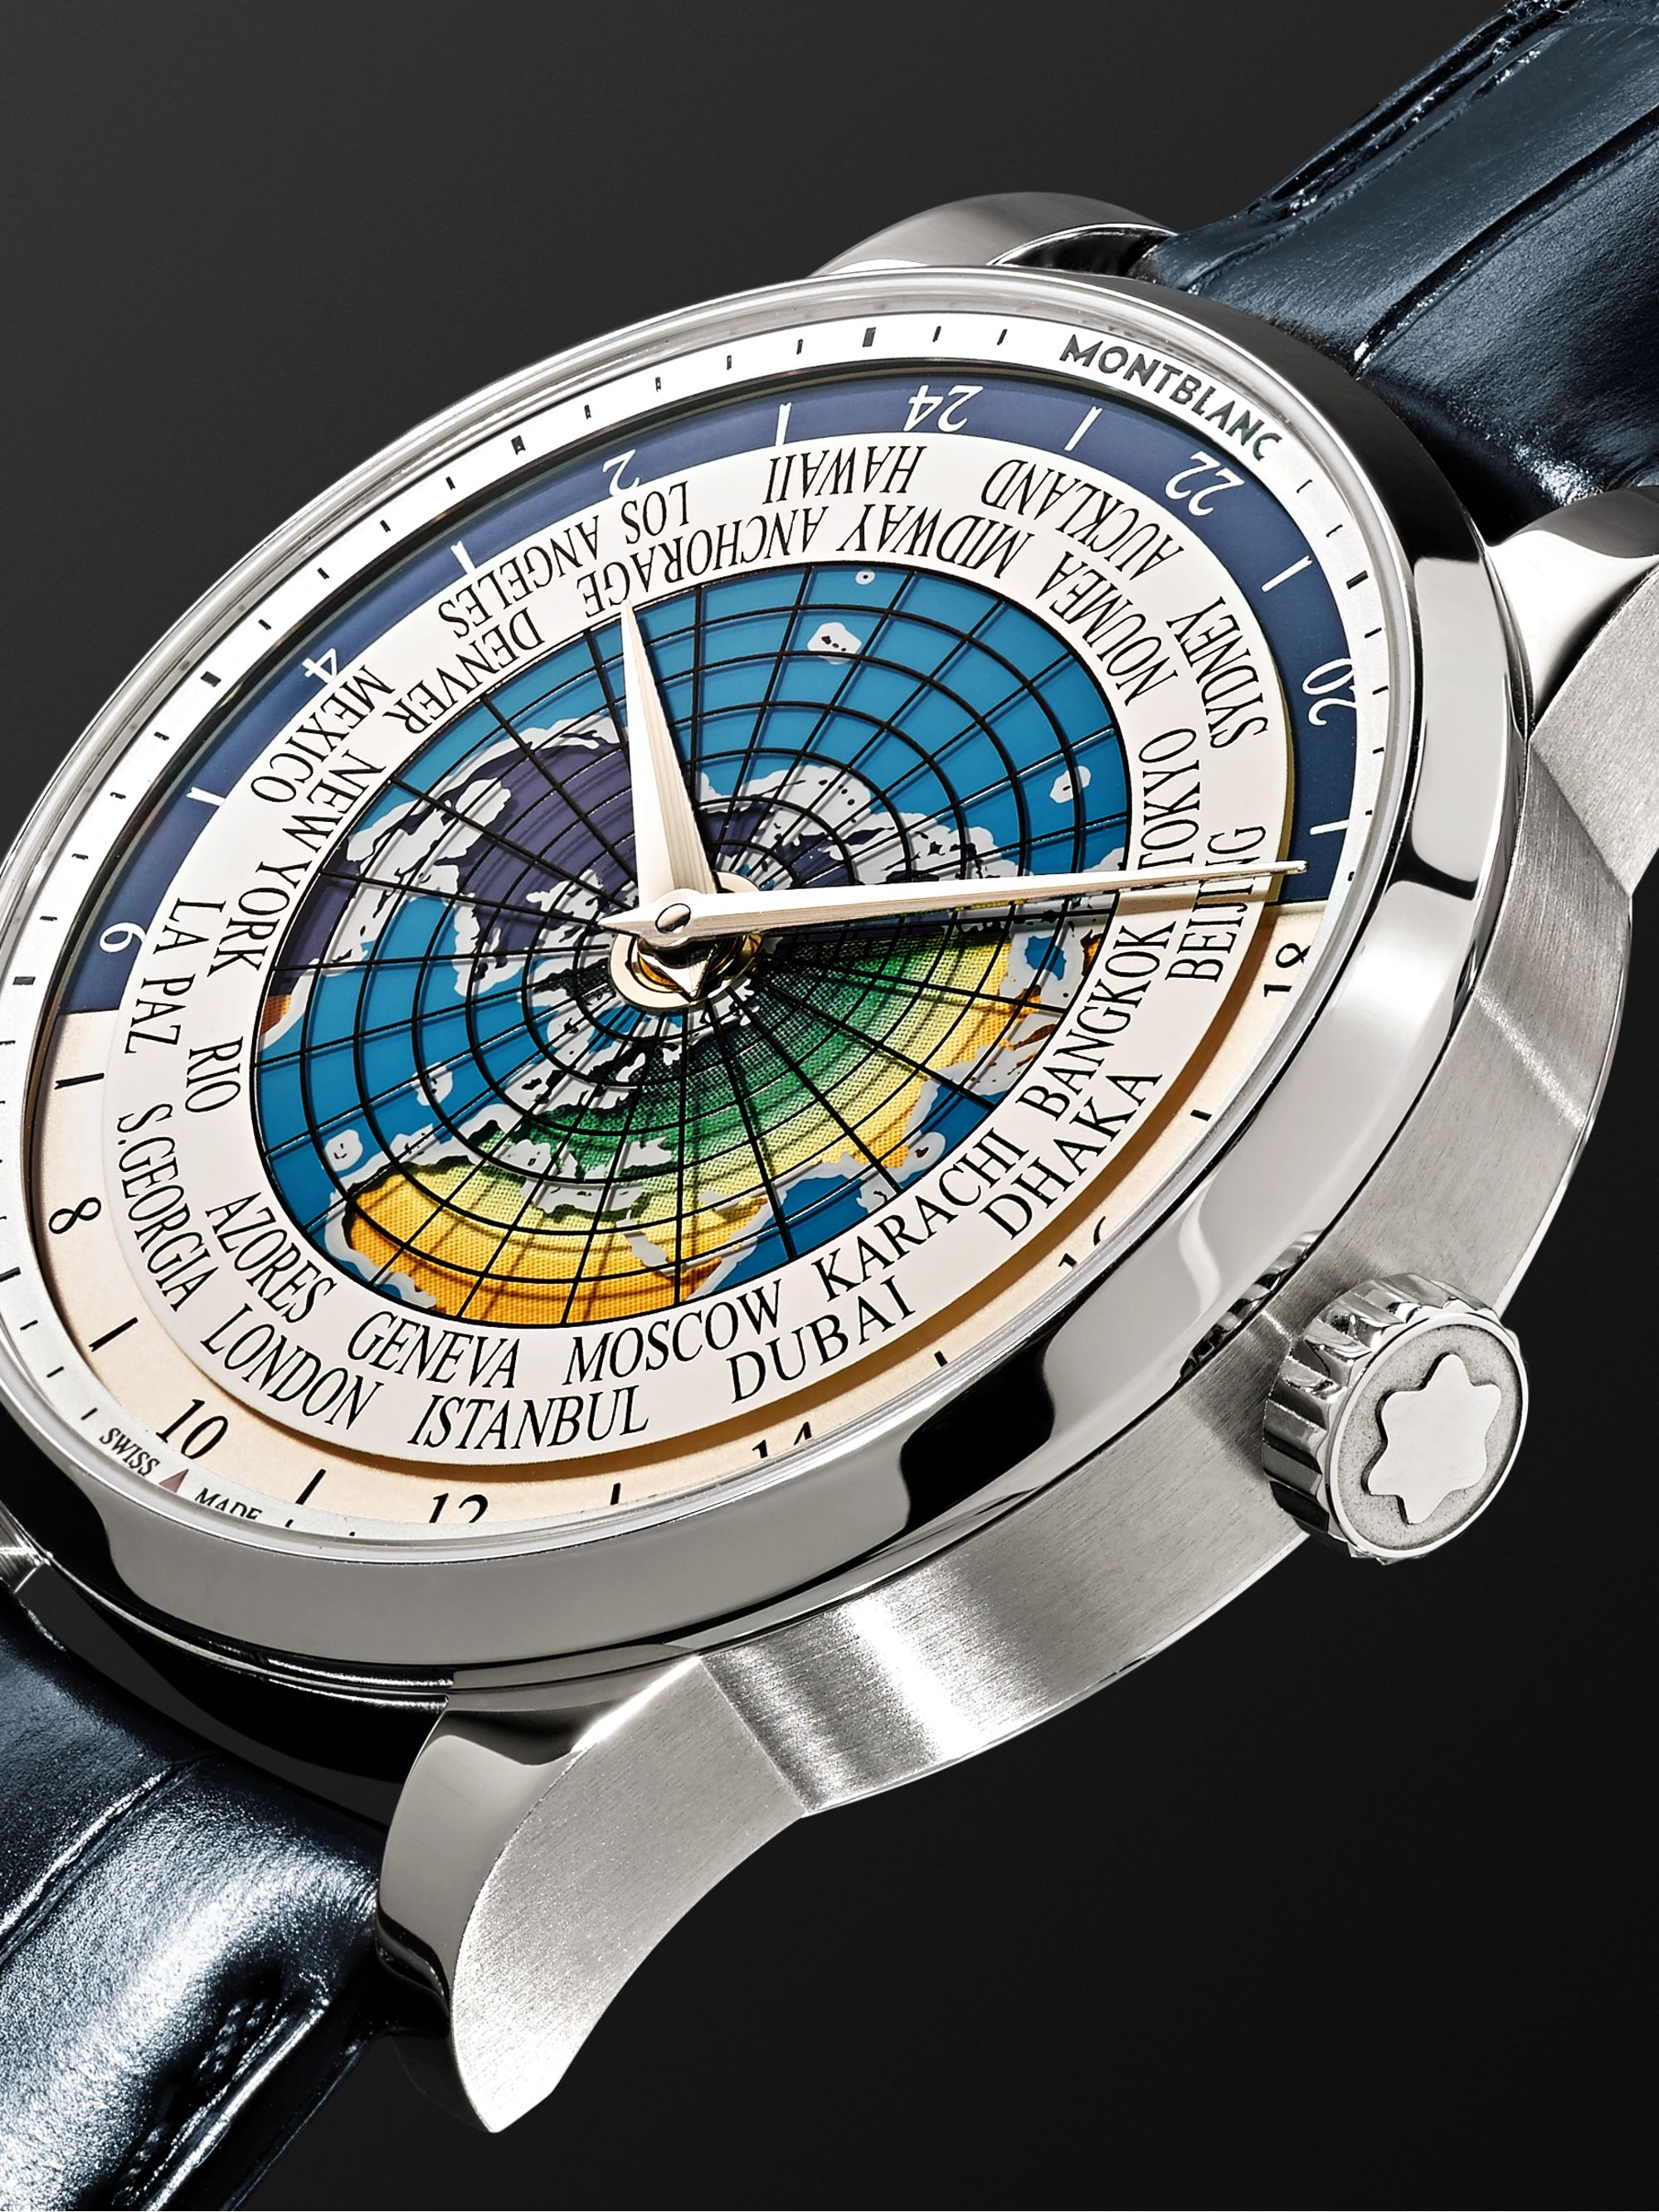 Montblanc Heritage Spirit Orbis Terrarum LATIN UNICEF 41mm Stainless Steel and Alligator Watch, Ref. No. 116533